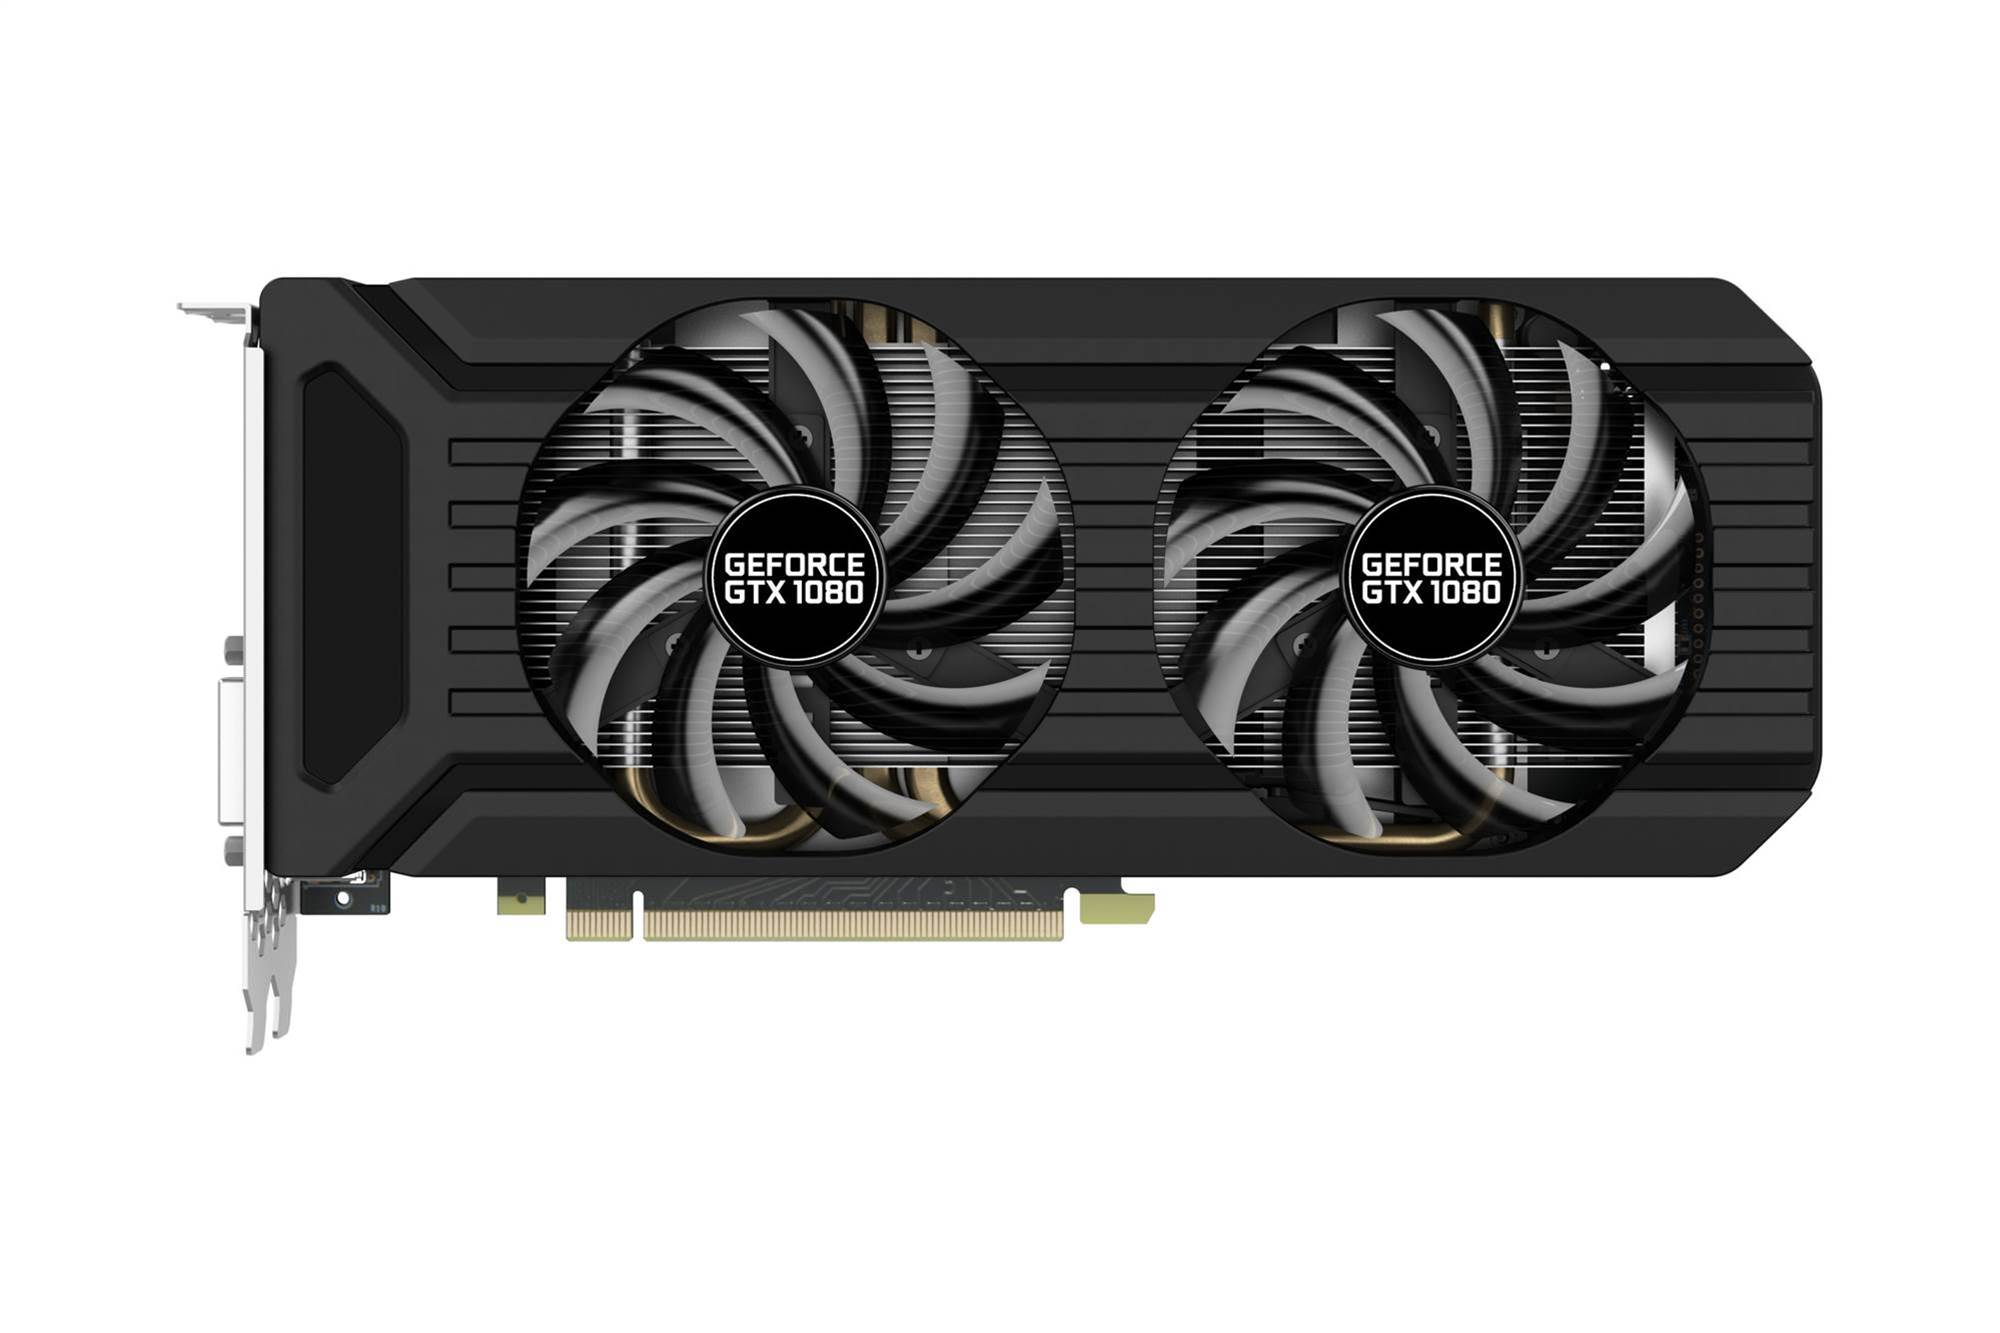 Palit reveals new GTX 1080 Dual OC video card